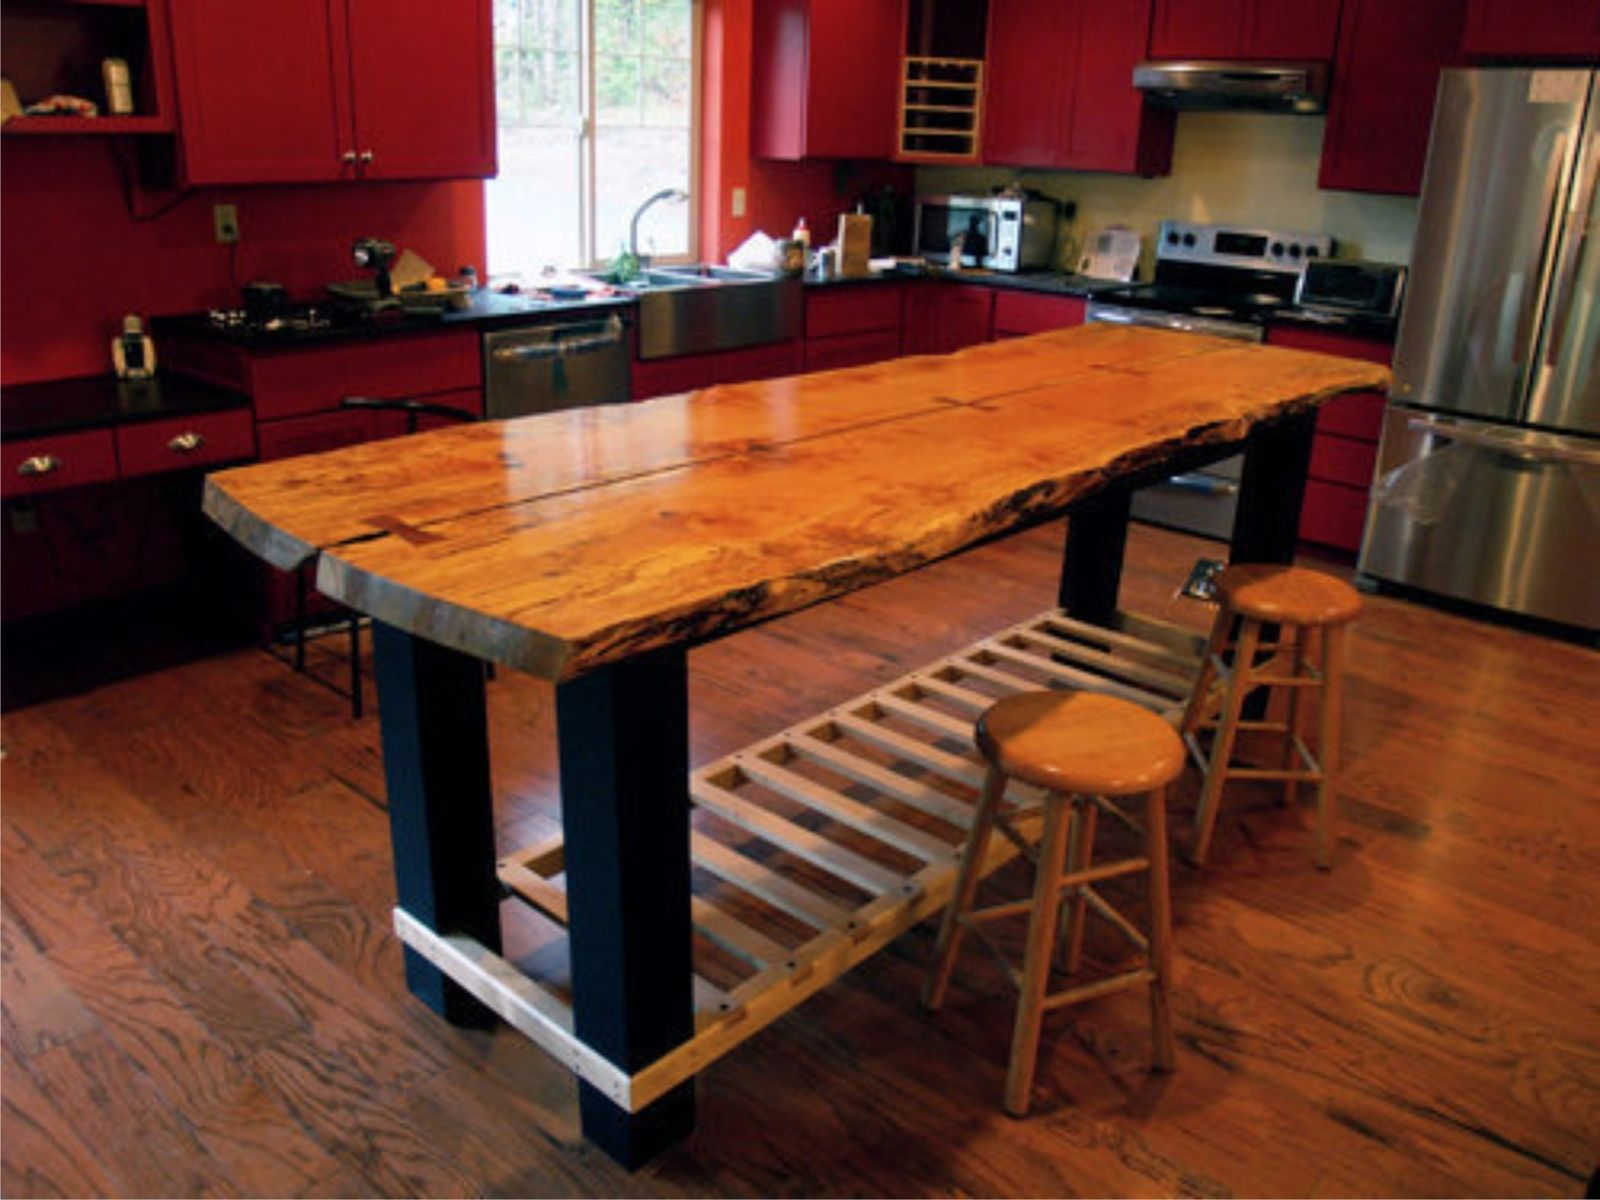 handmade custom island table by jeffrey coleson art and